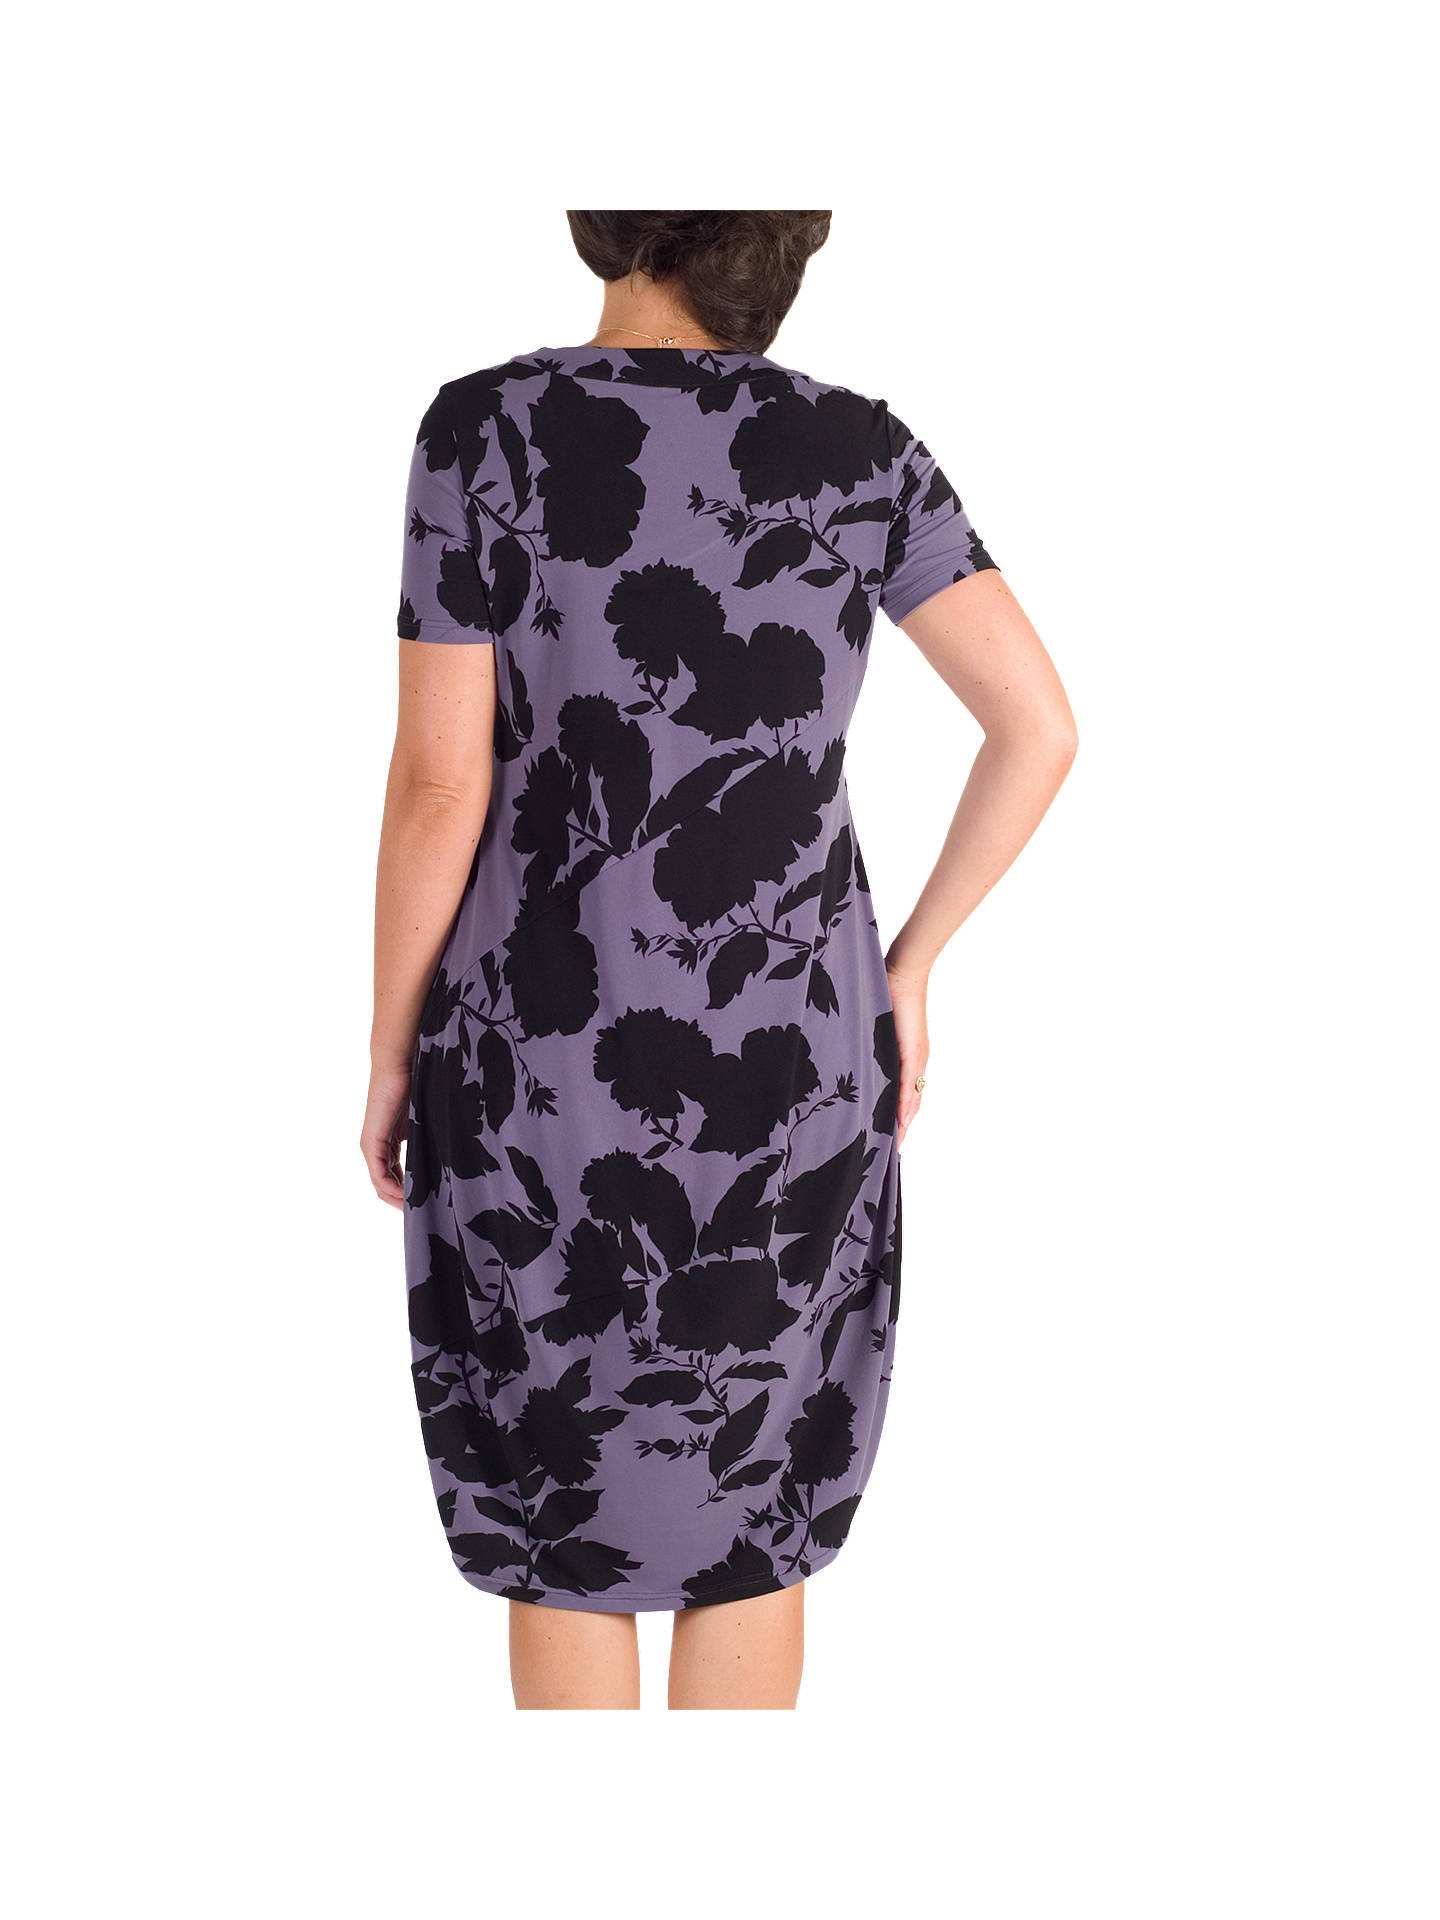 BuyChesca Floral Print Dress, Hyacinth, 12-14 Online at johnlewis.com